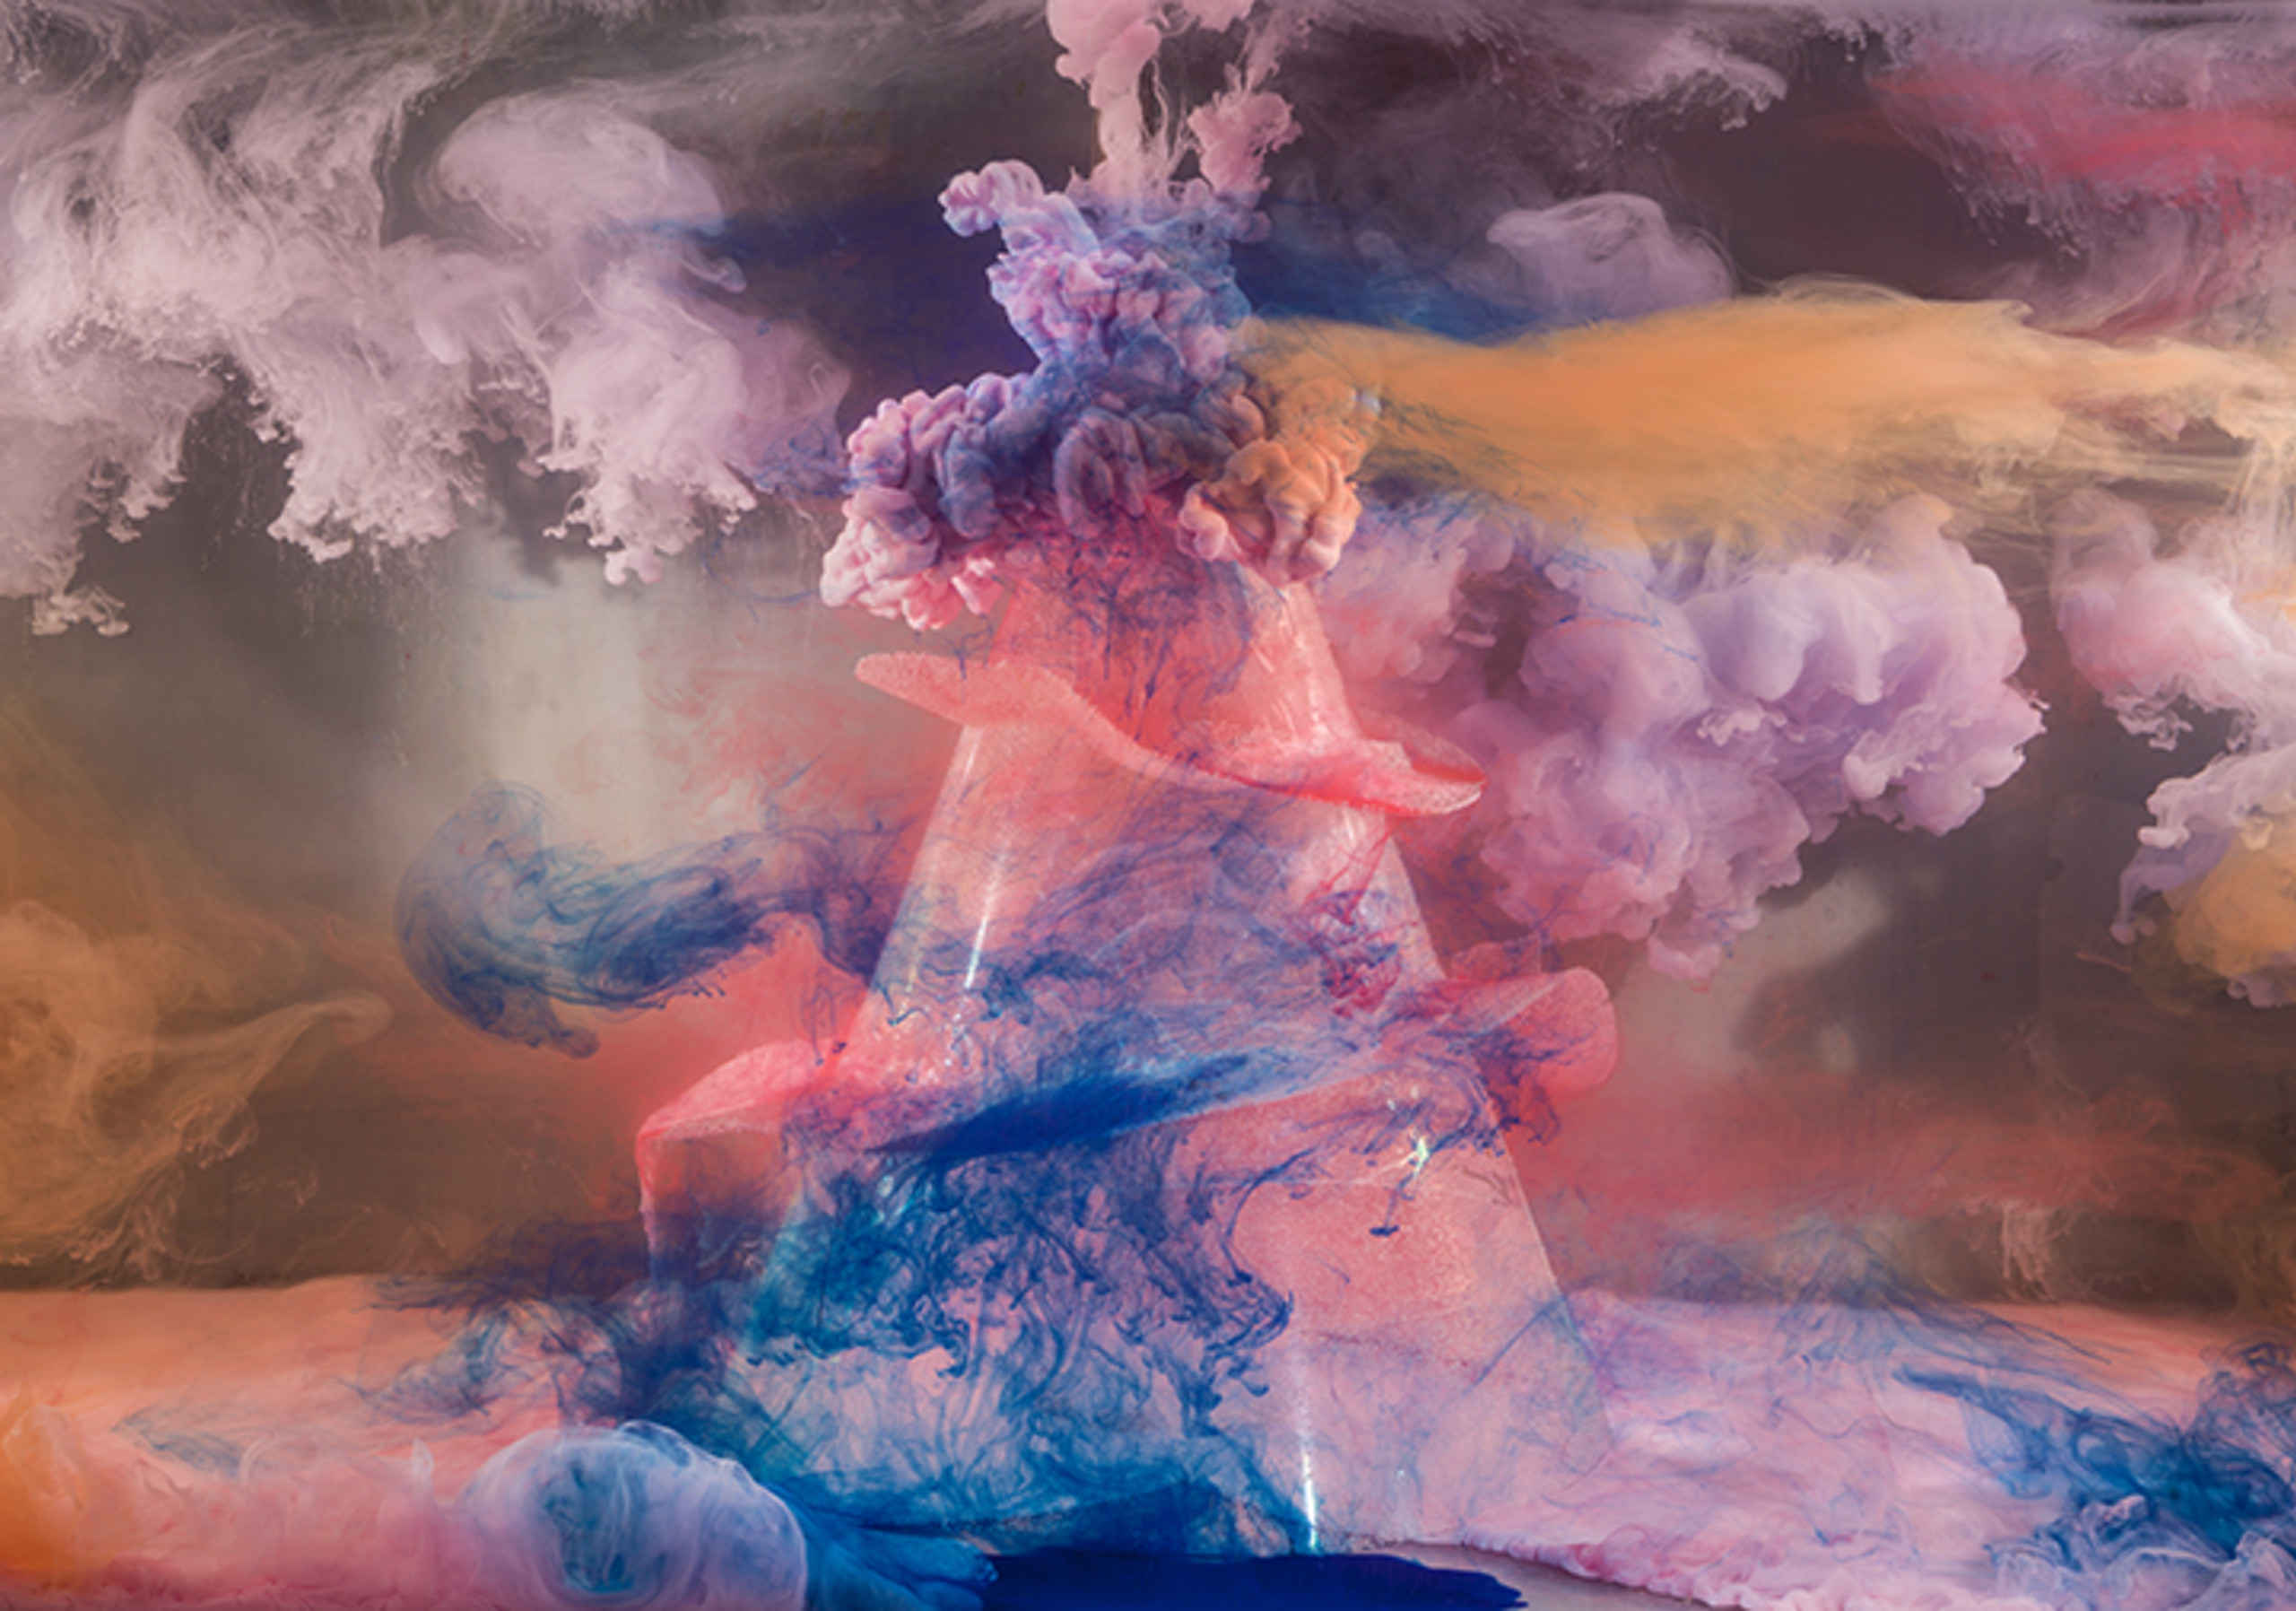 Kim Keever | Painting or Abstract Photography?